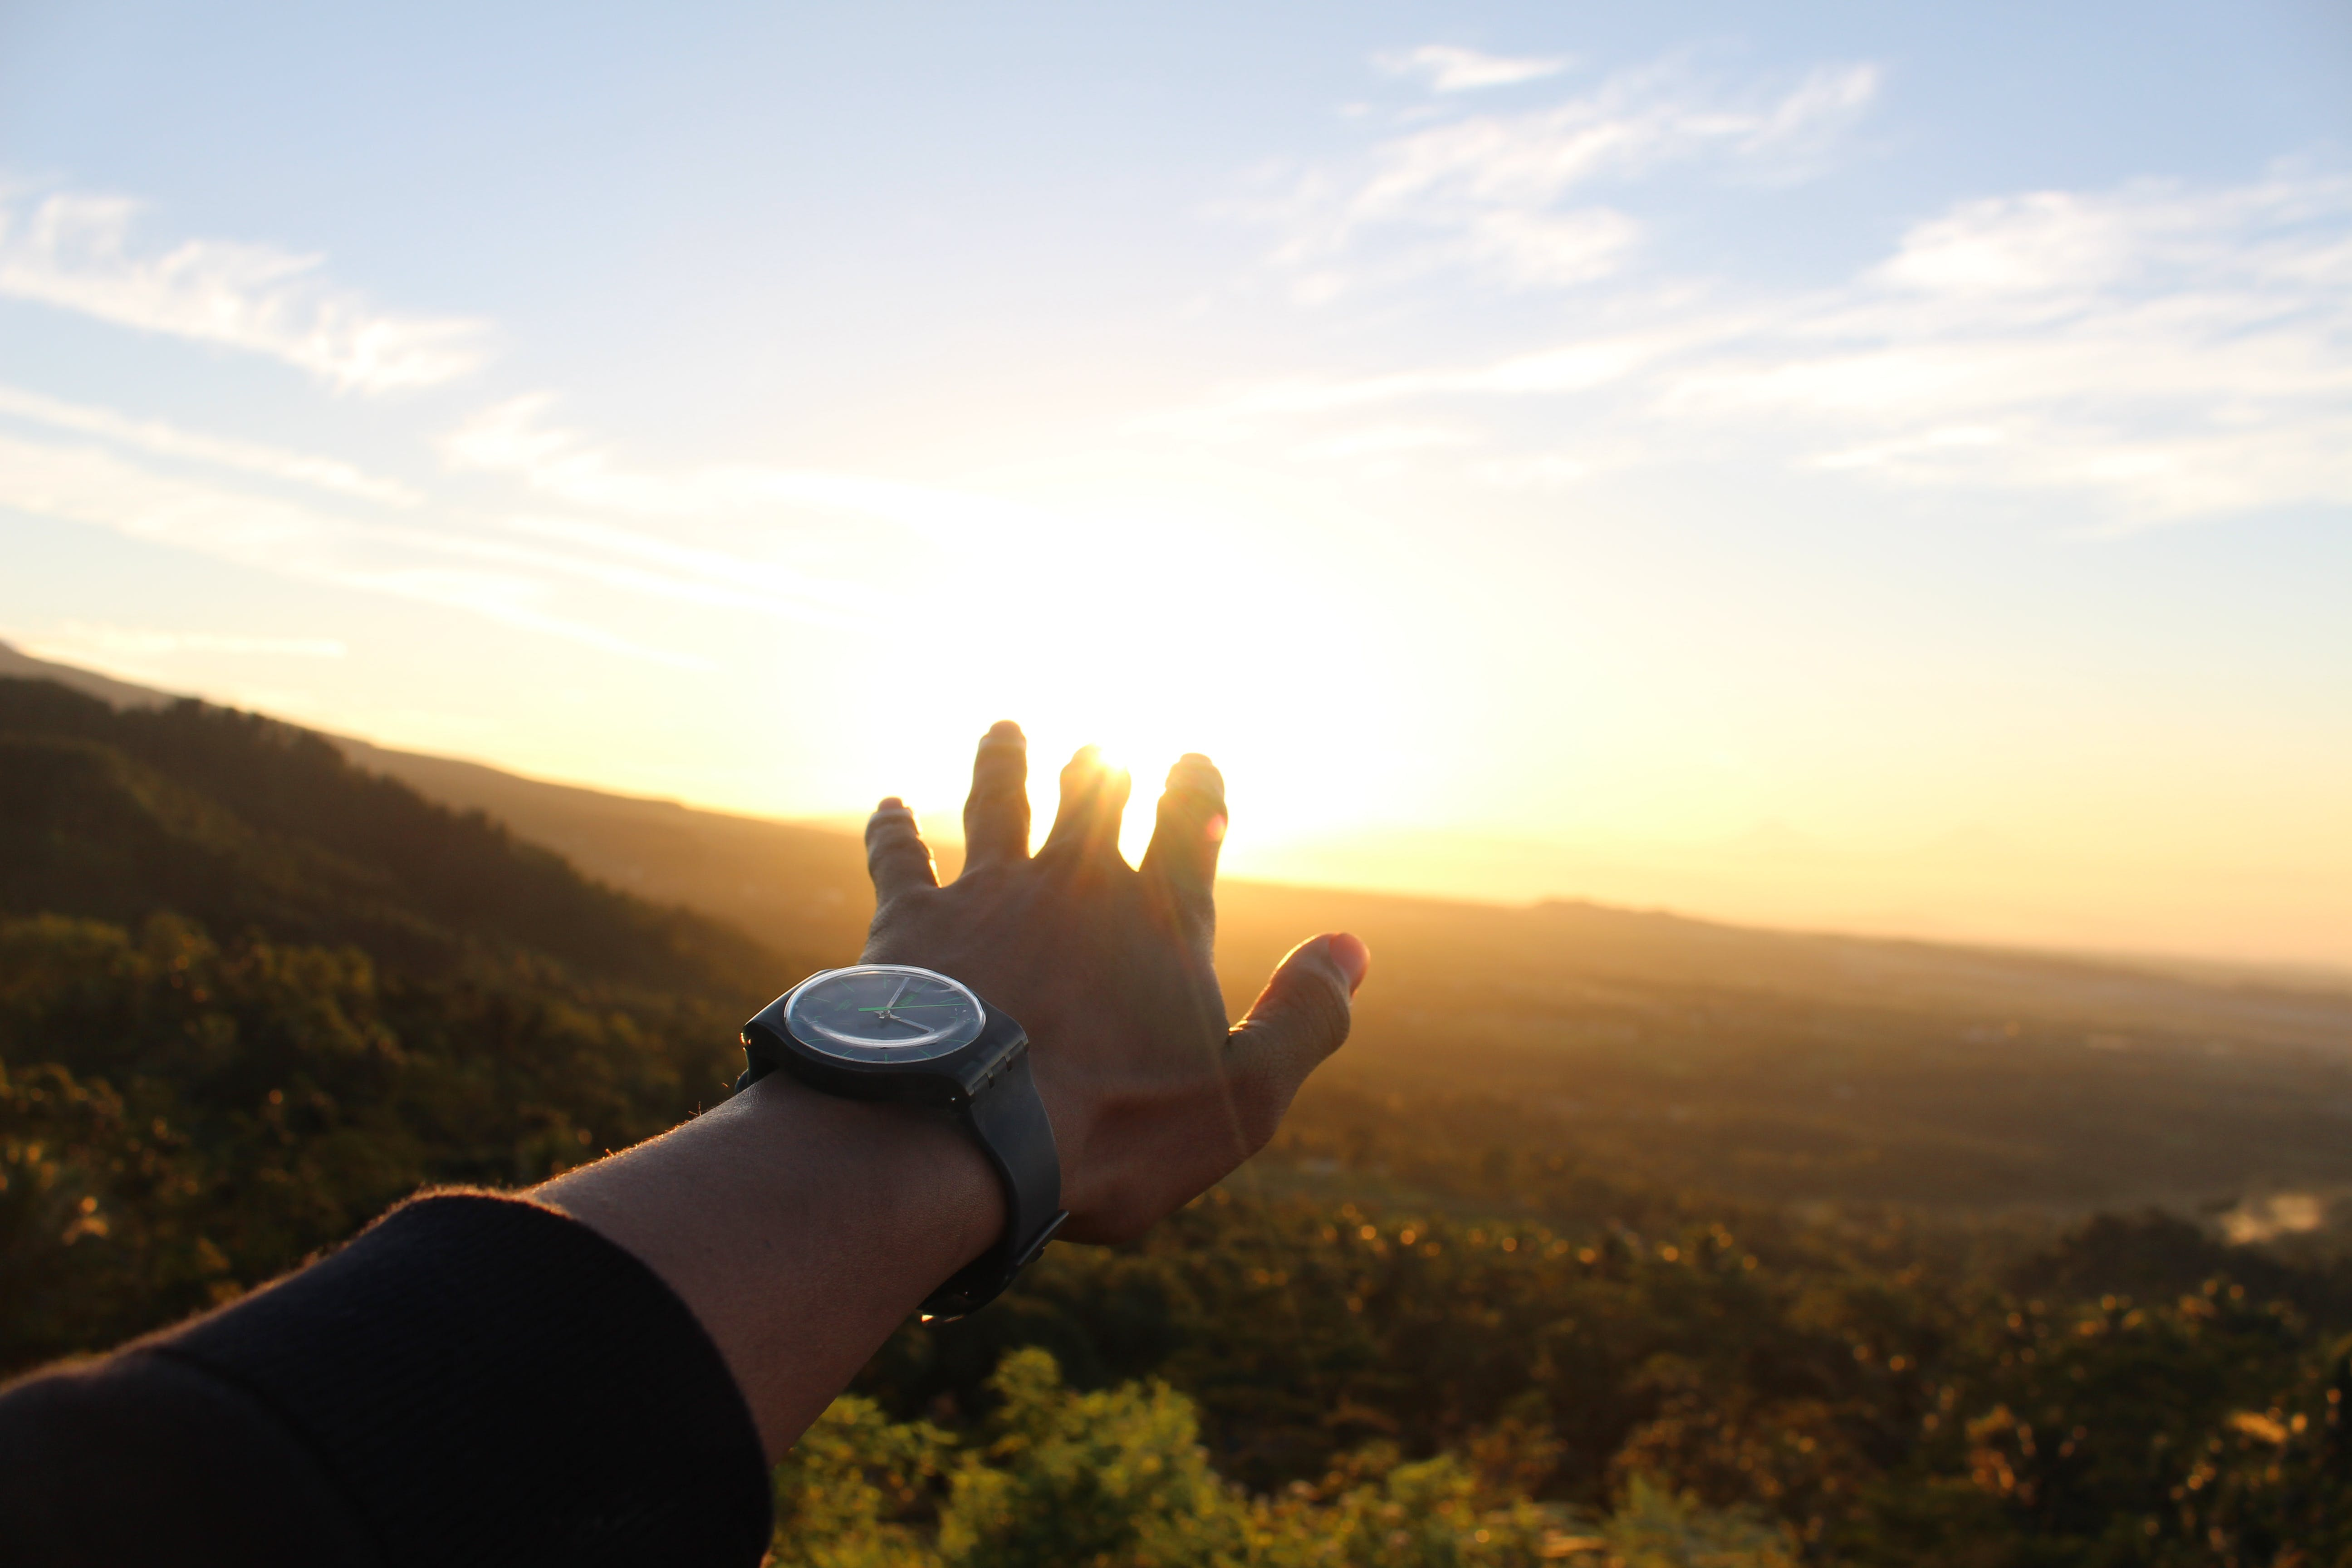 Person's Left Hand During Golden Hour